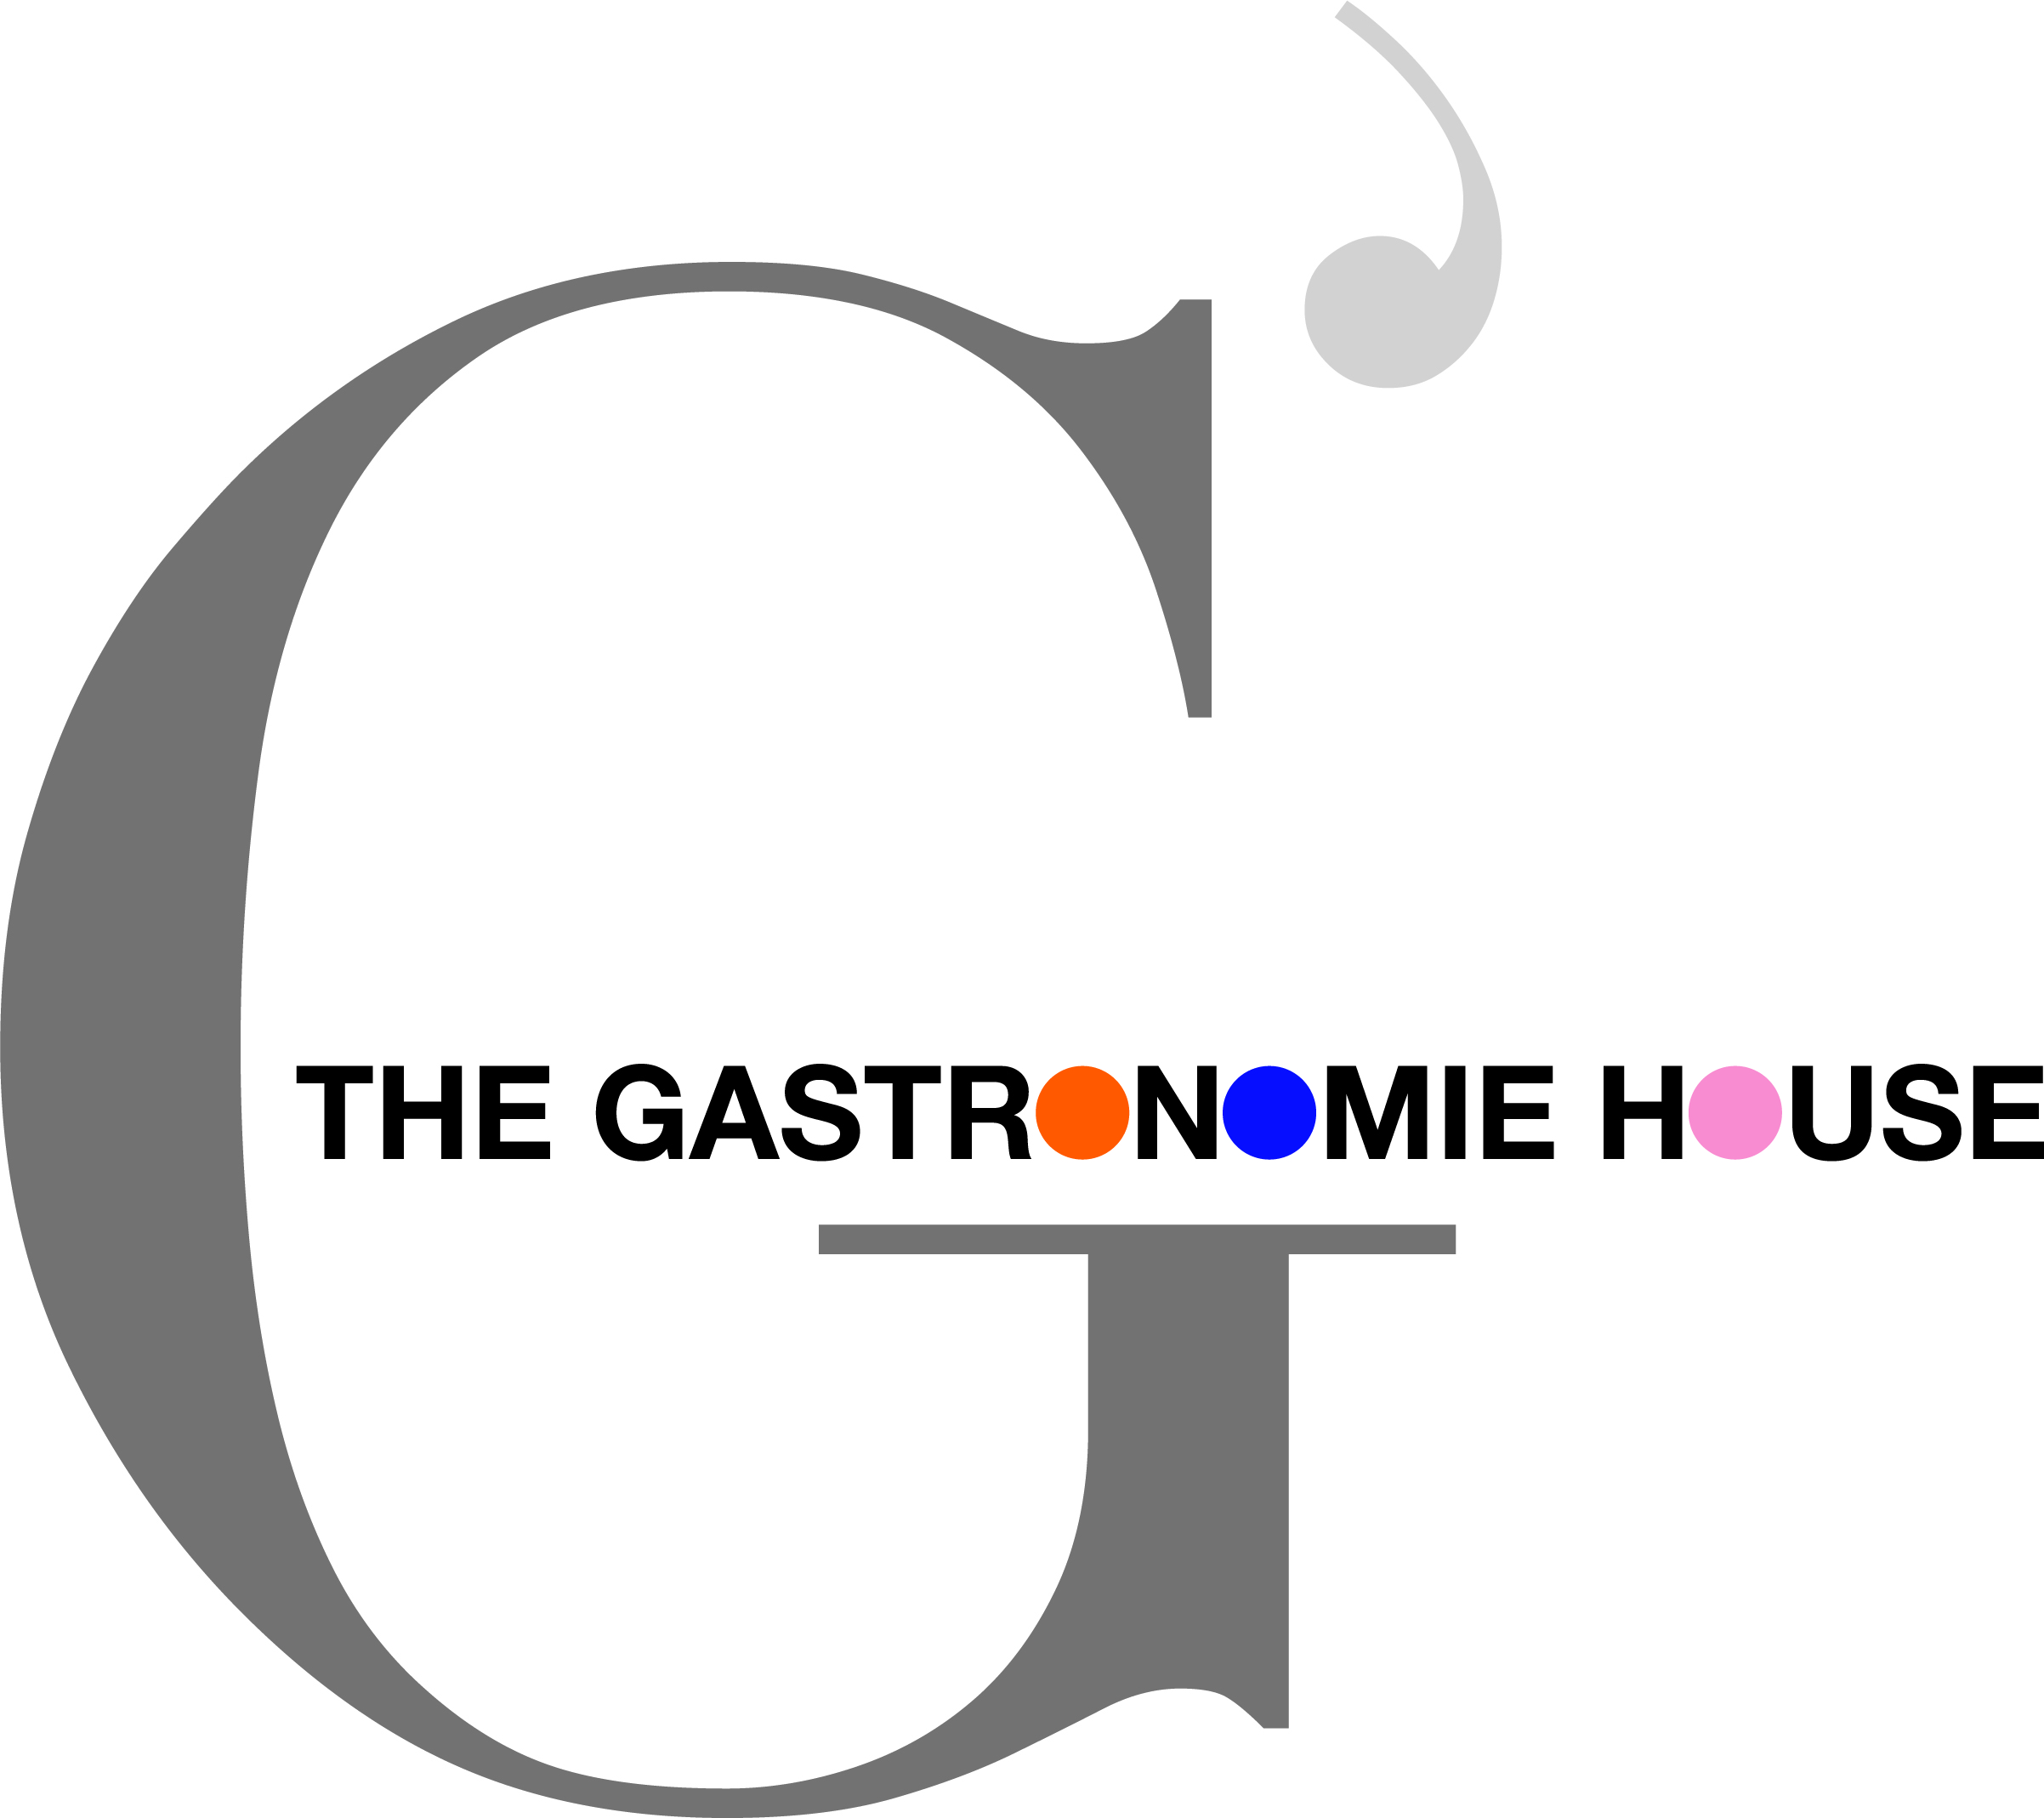 The Gastronomie House